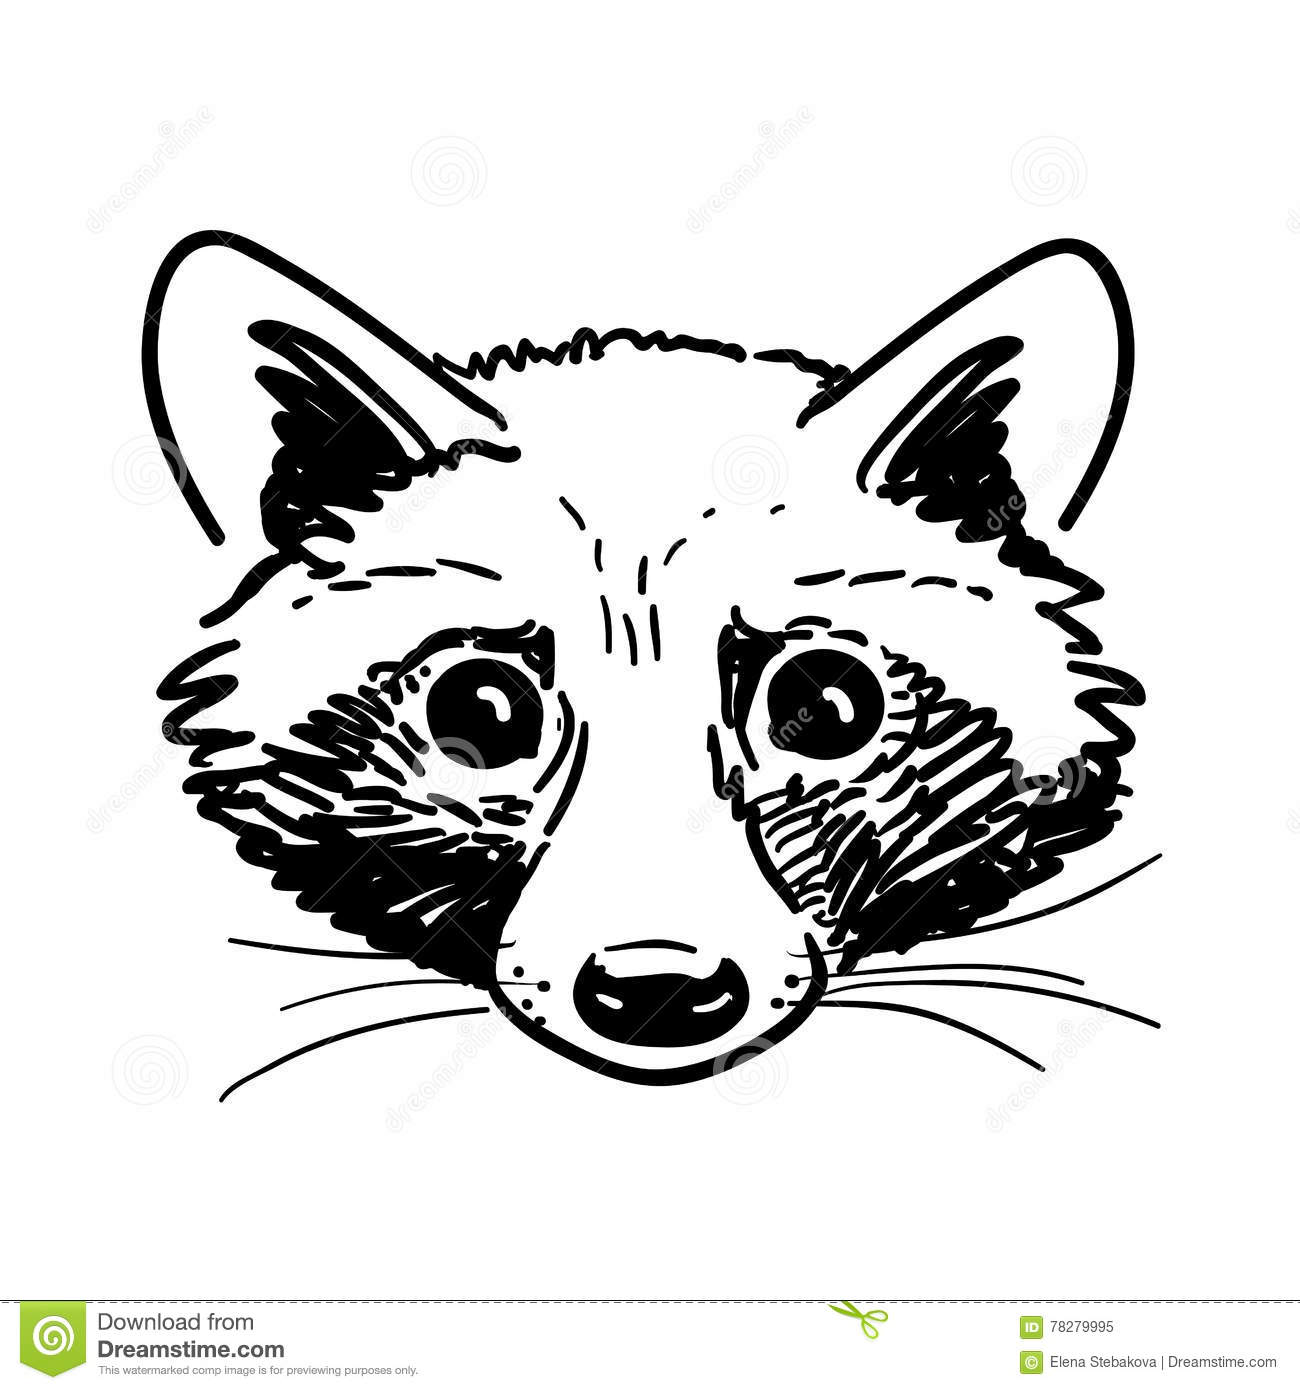 ink drawing of a raccoon royalty free stock image image 19816206